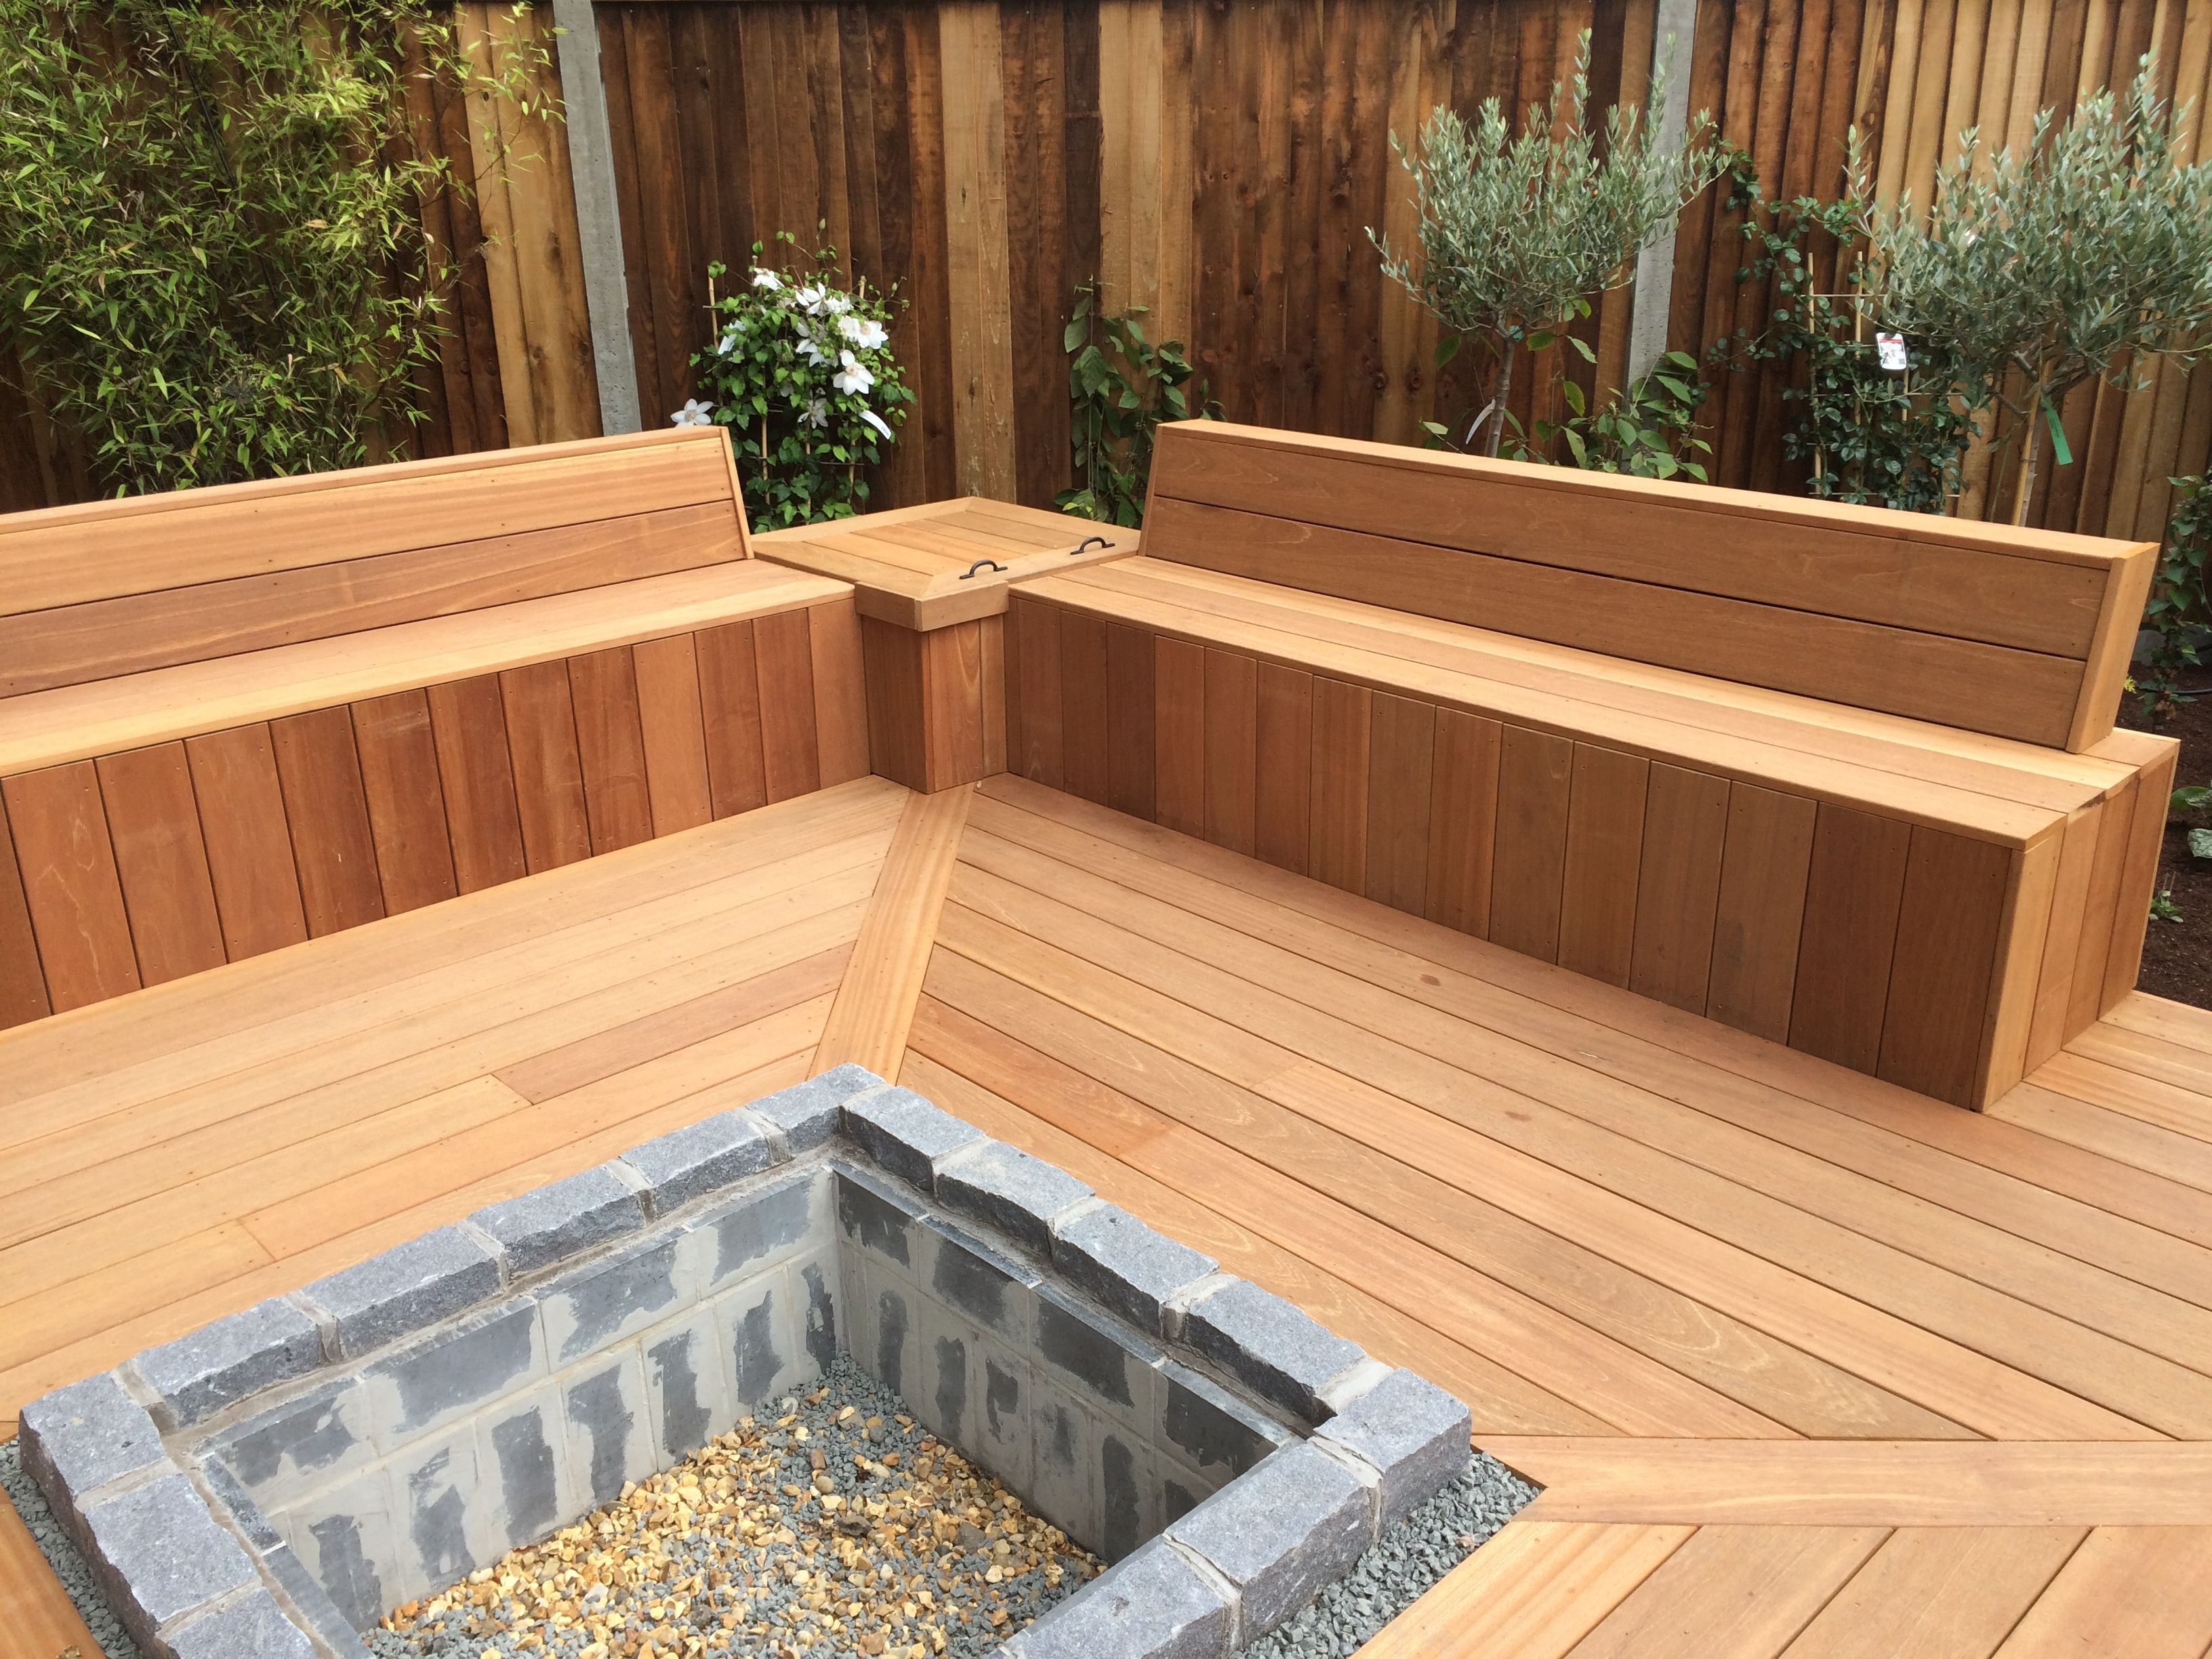 Sunken Fire Pit Incorporated Into A Welcoming Decking Area A Recent Creation Of Rosie Landscapes Sunken Fire Pits Deck Fire Pit Garden Sitting Areas